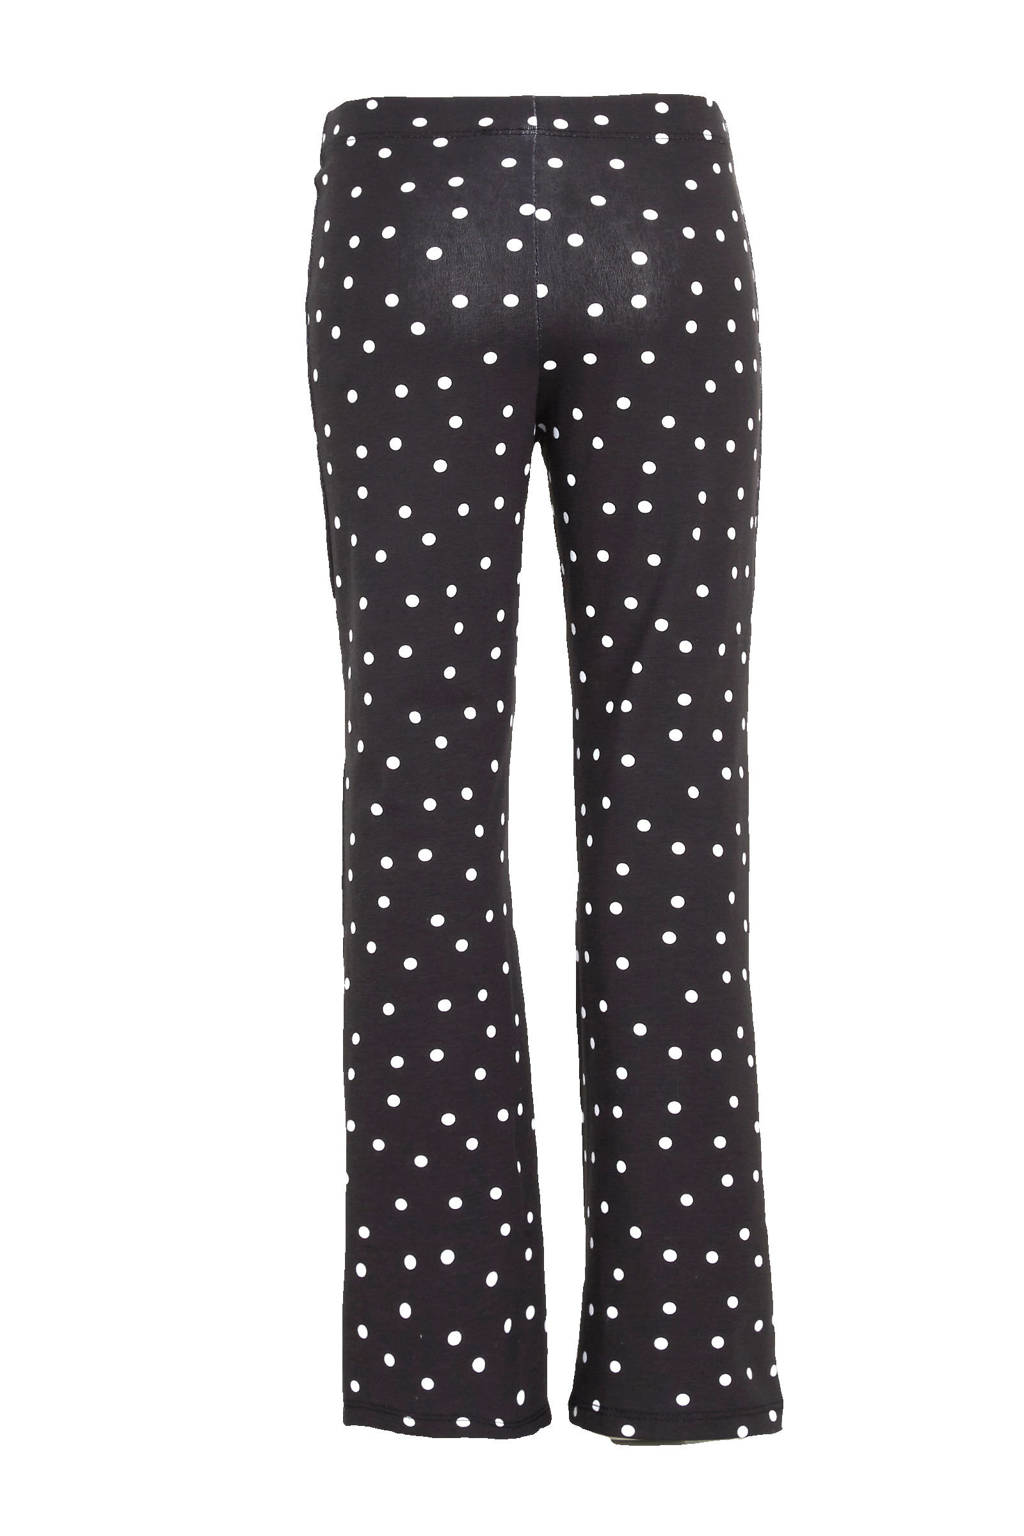 Ellos flared broek Ebb met all over print zwart/wit, Zwart/wit